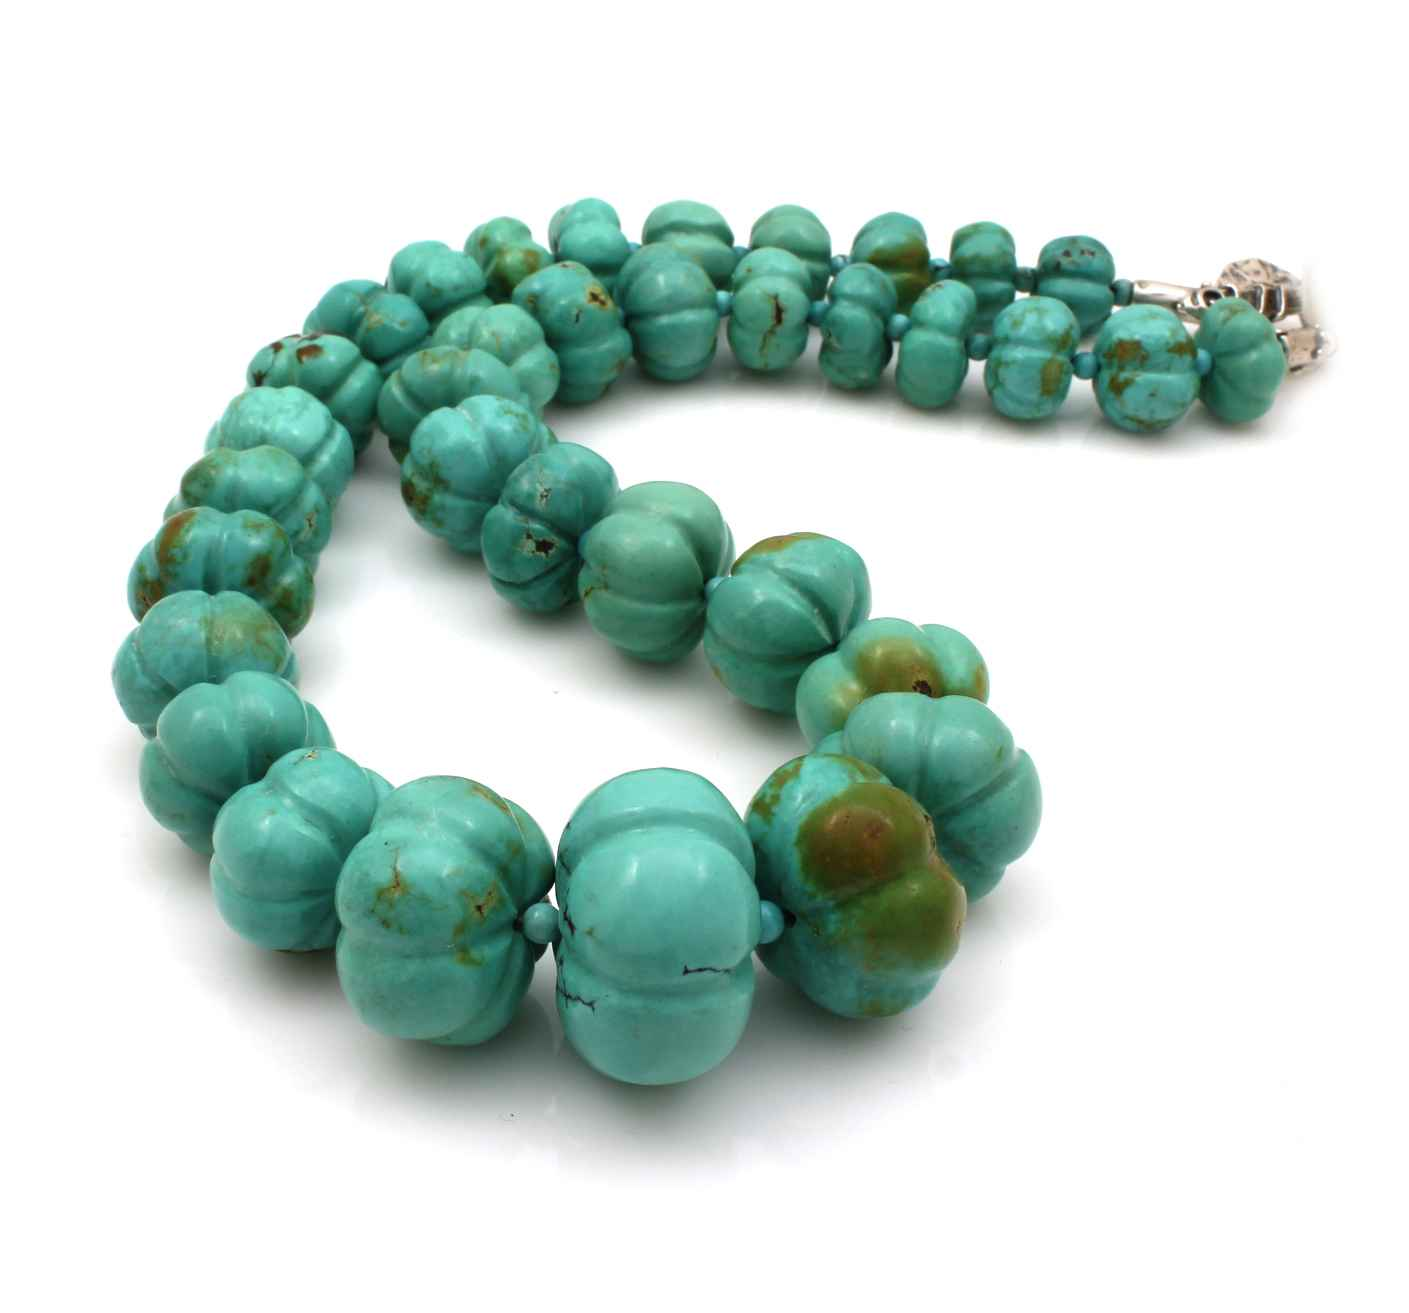 Carved Turquoise Melo... by  Pam Springall - Masterpiece Online